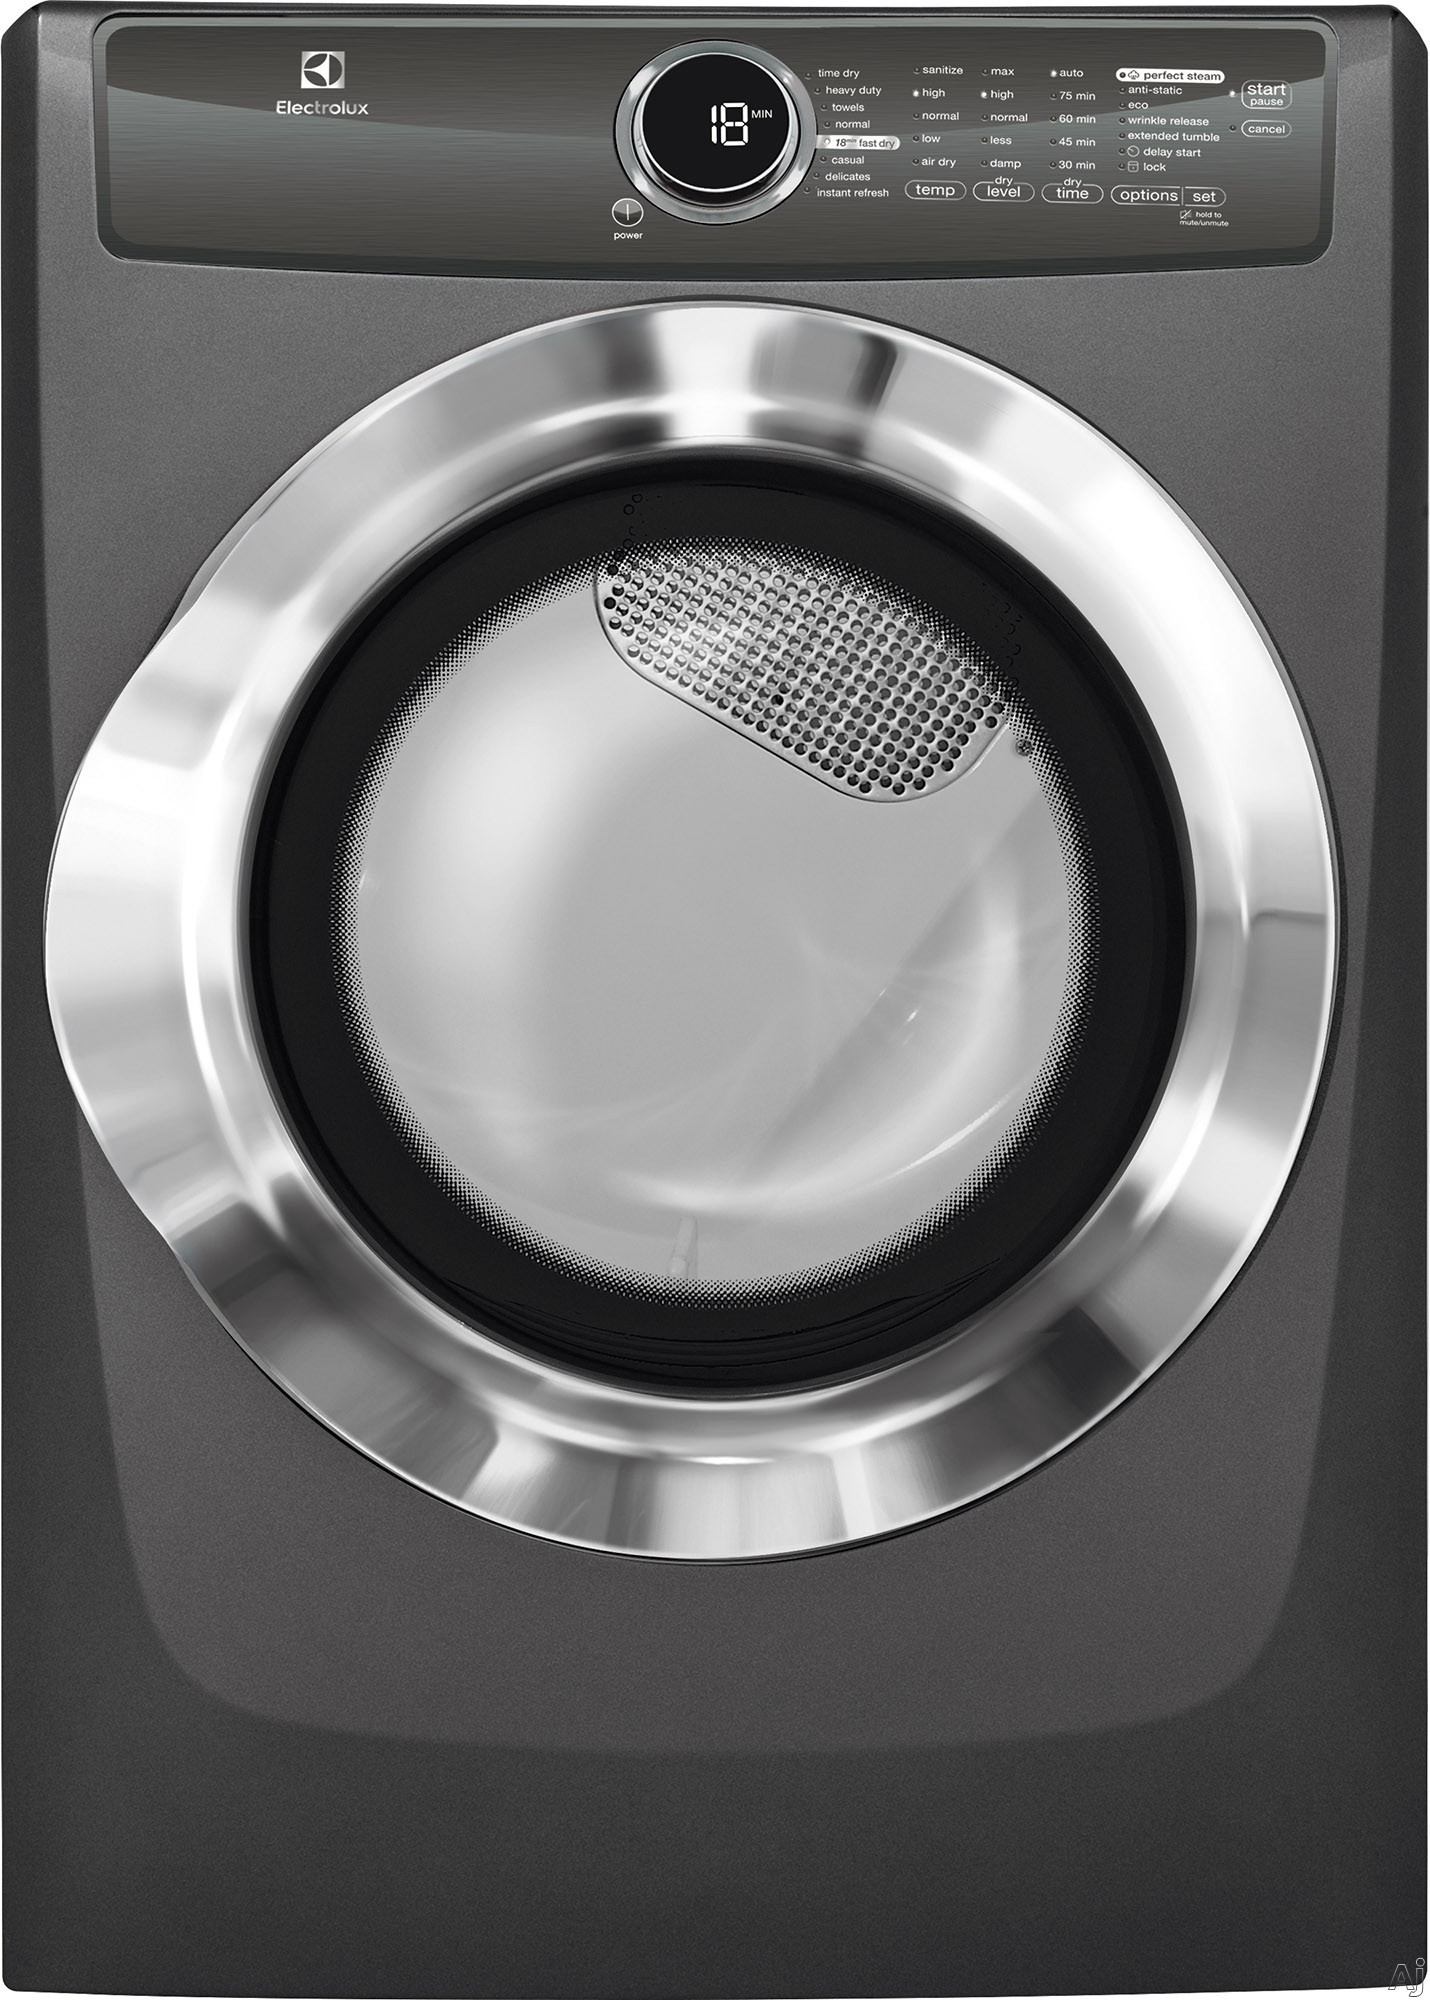 Electrolux EFME617SX 27 Inch 8.0 cu. ft. Electric Dryer with Moisture Sensor, Perfect Steam™, Instant Refresh, 9 Dry Cycles, 15 Min Fast Dry, Allergen Cycle, Extended Tumble, Luxury-Quiet Sound System and ENERGY STAR® Rated